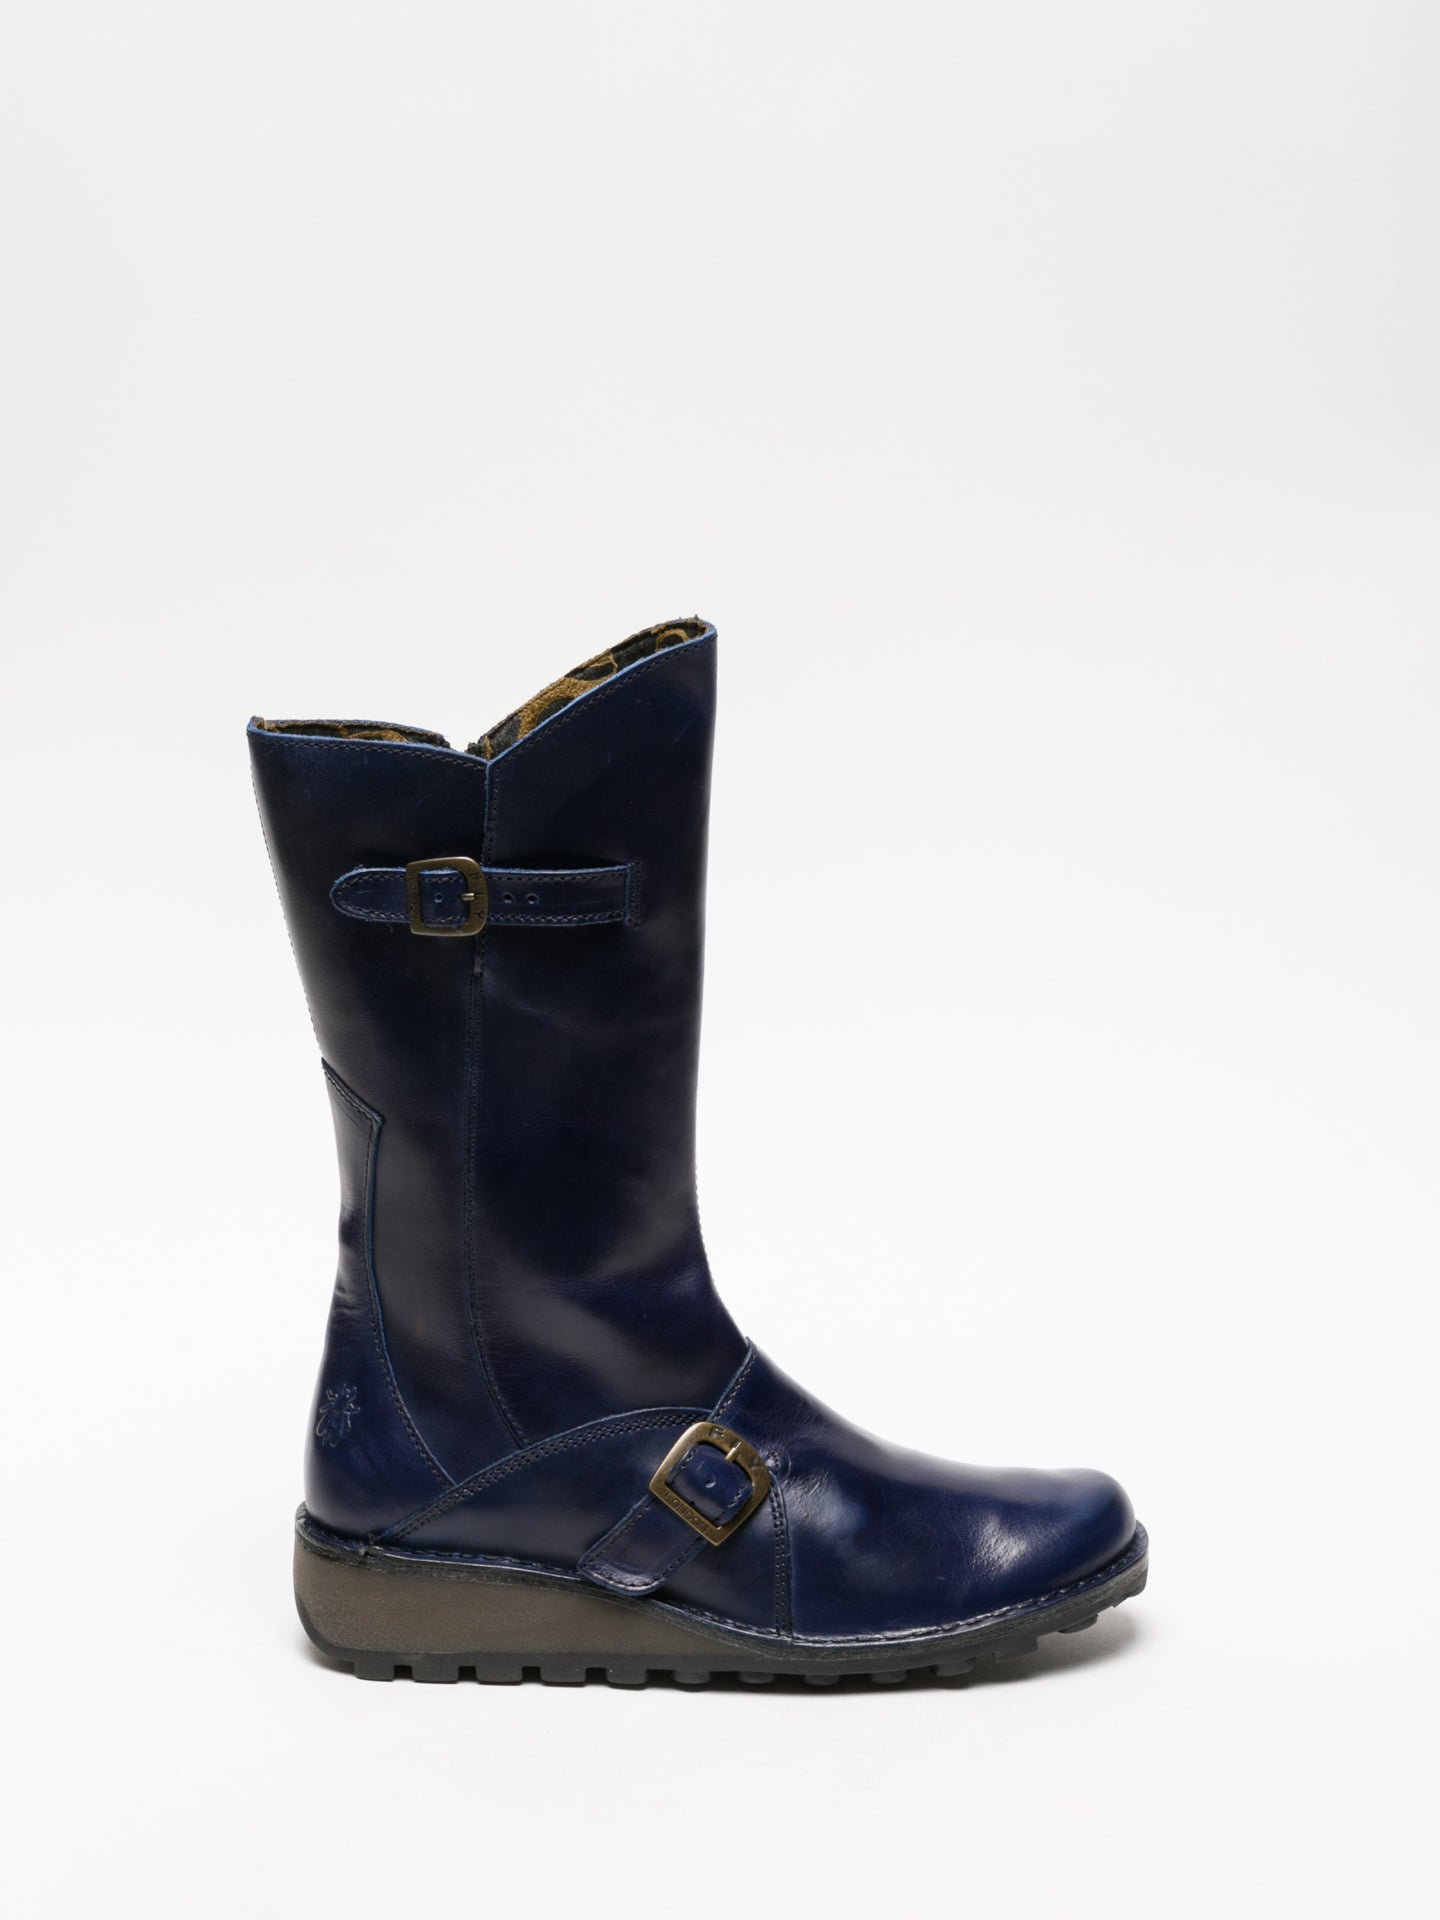 Fly London Navy Buckle Boots